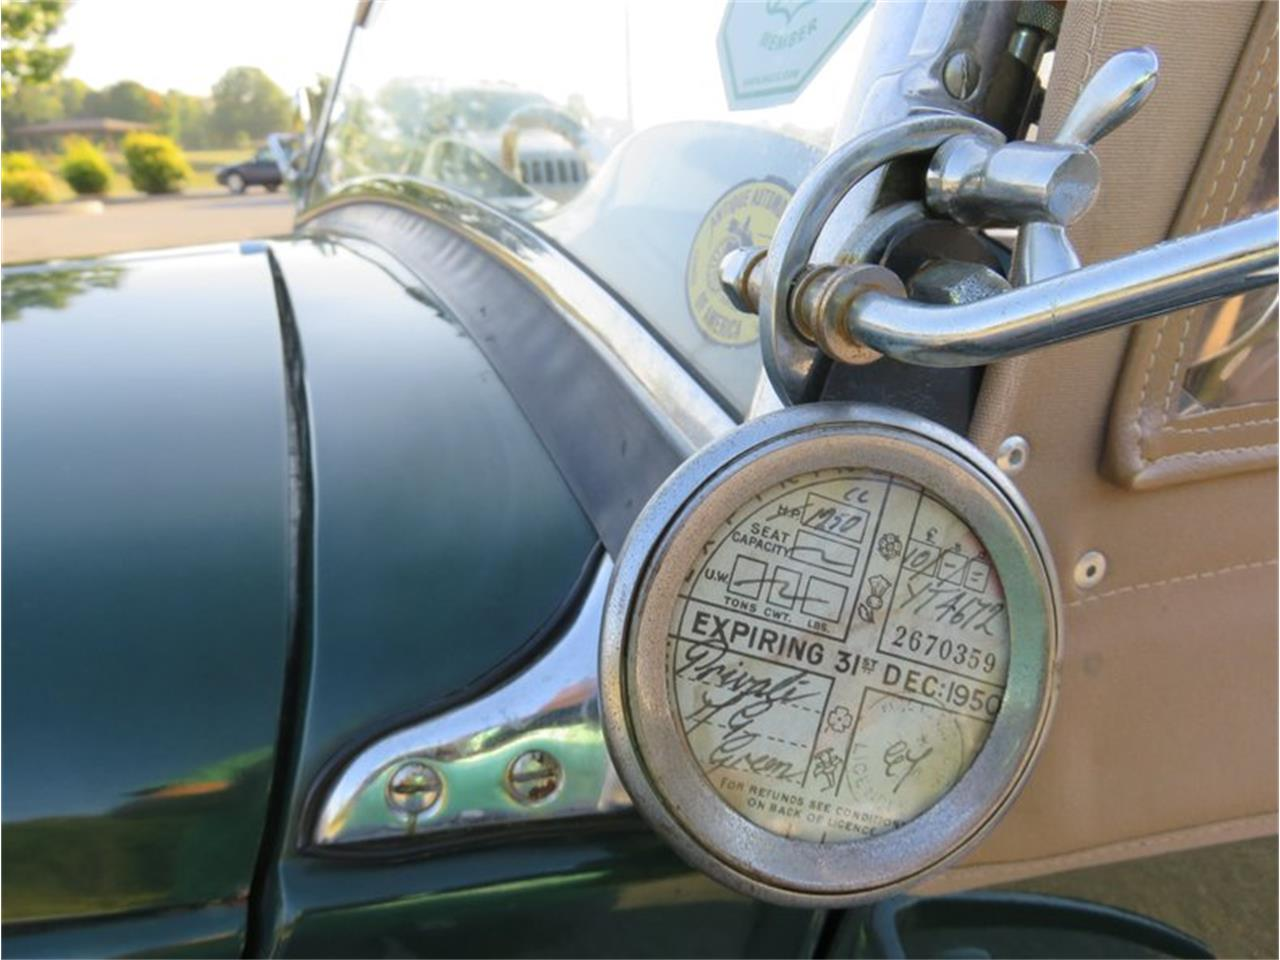 Large Picture of Classic 1950 MG Series YT located in Kokomo Indiana Auction Vehicle Offered by Earlywine Auctions - R37M